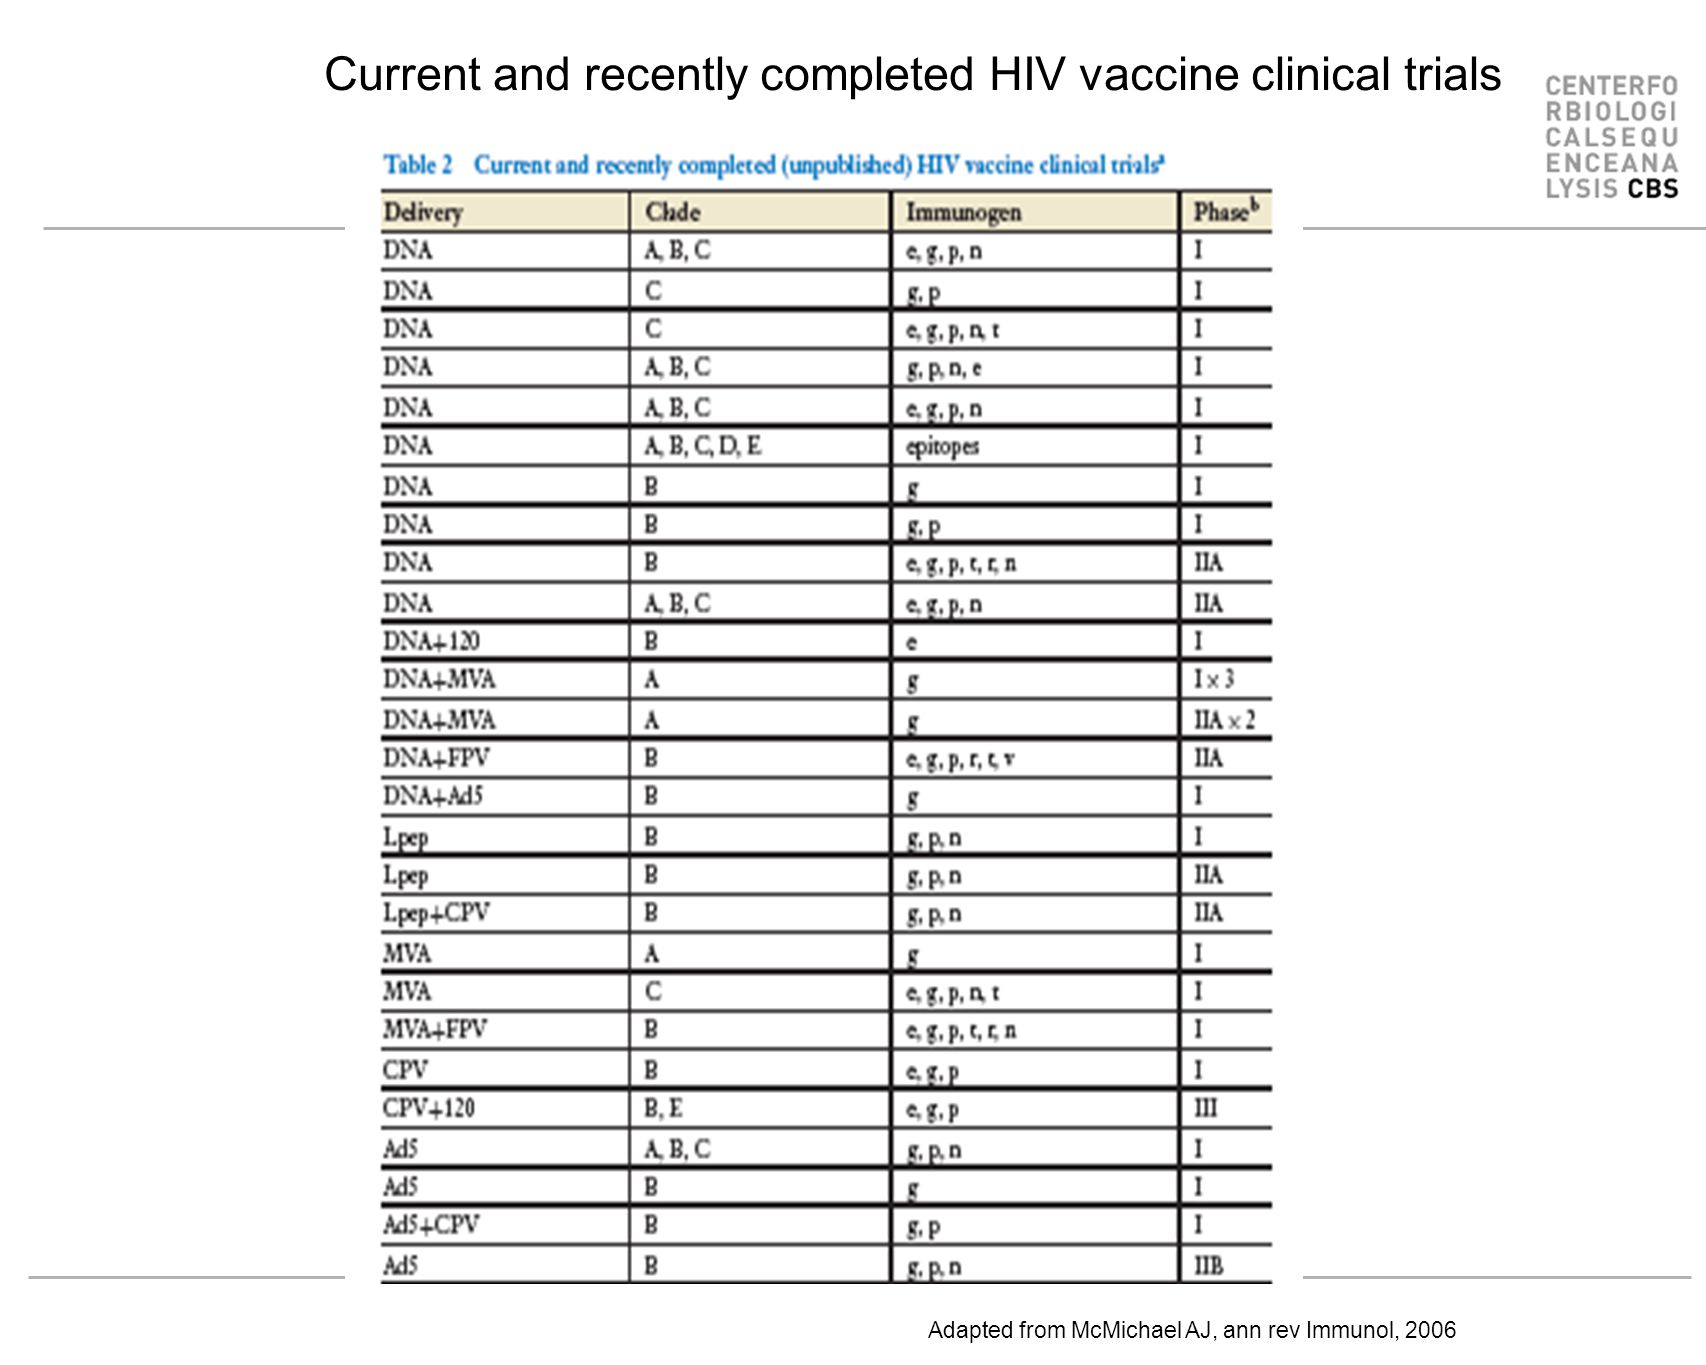 Current and recently completed HIV vaccine clinical trials